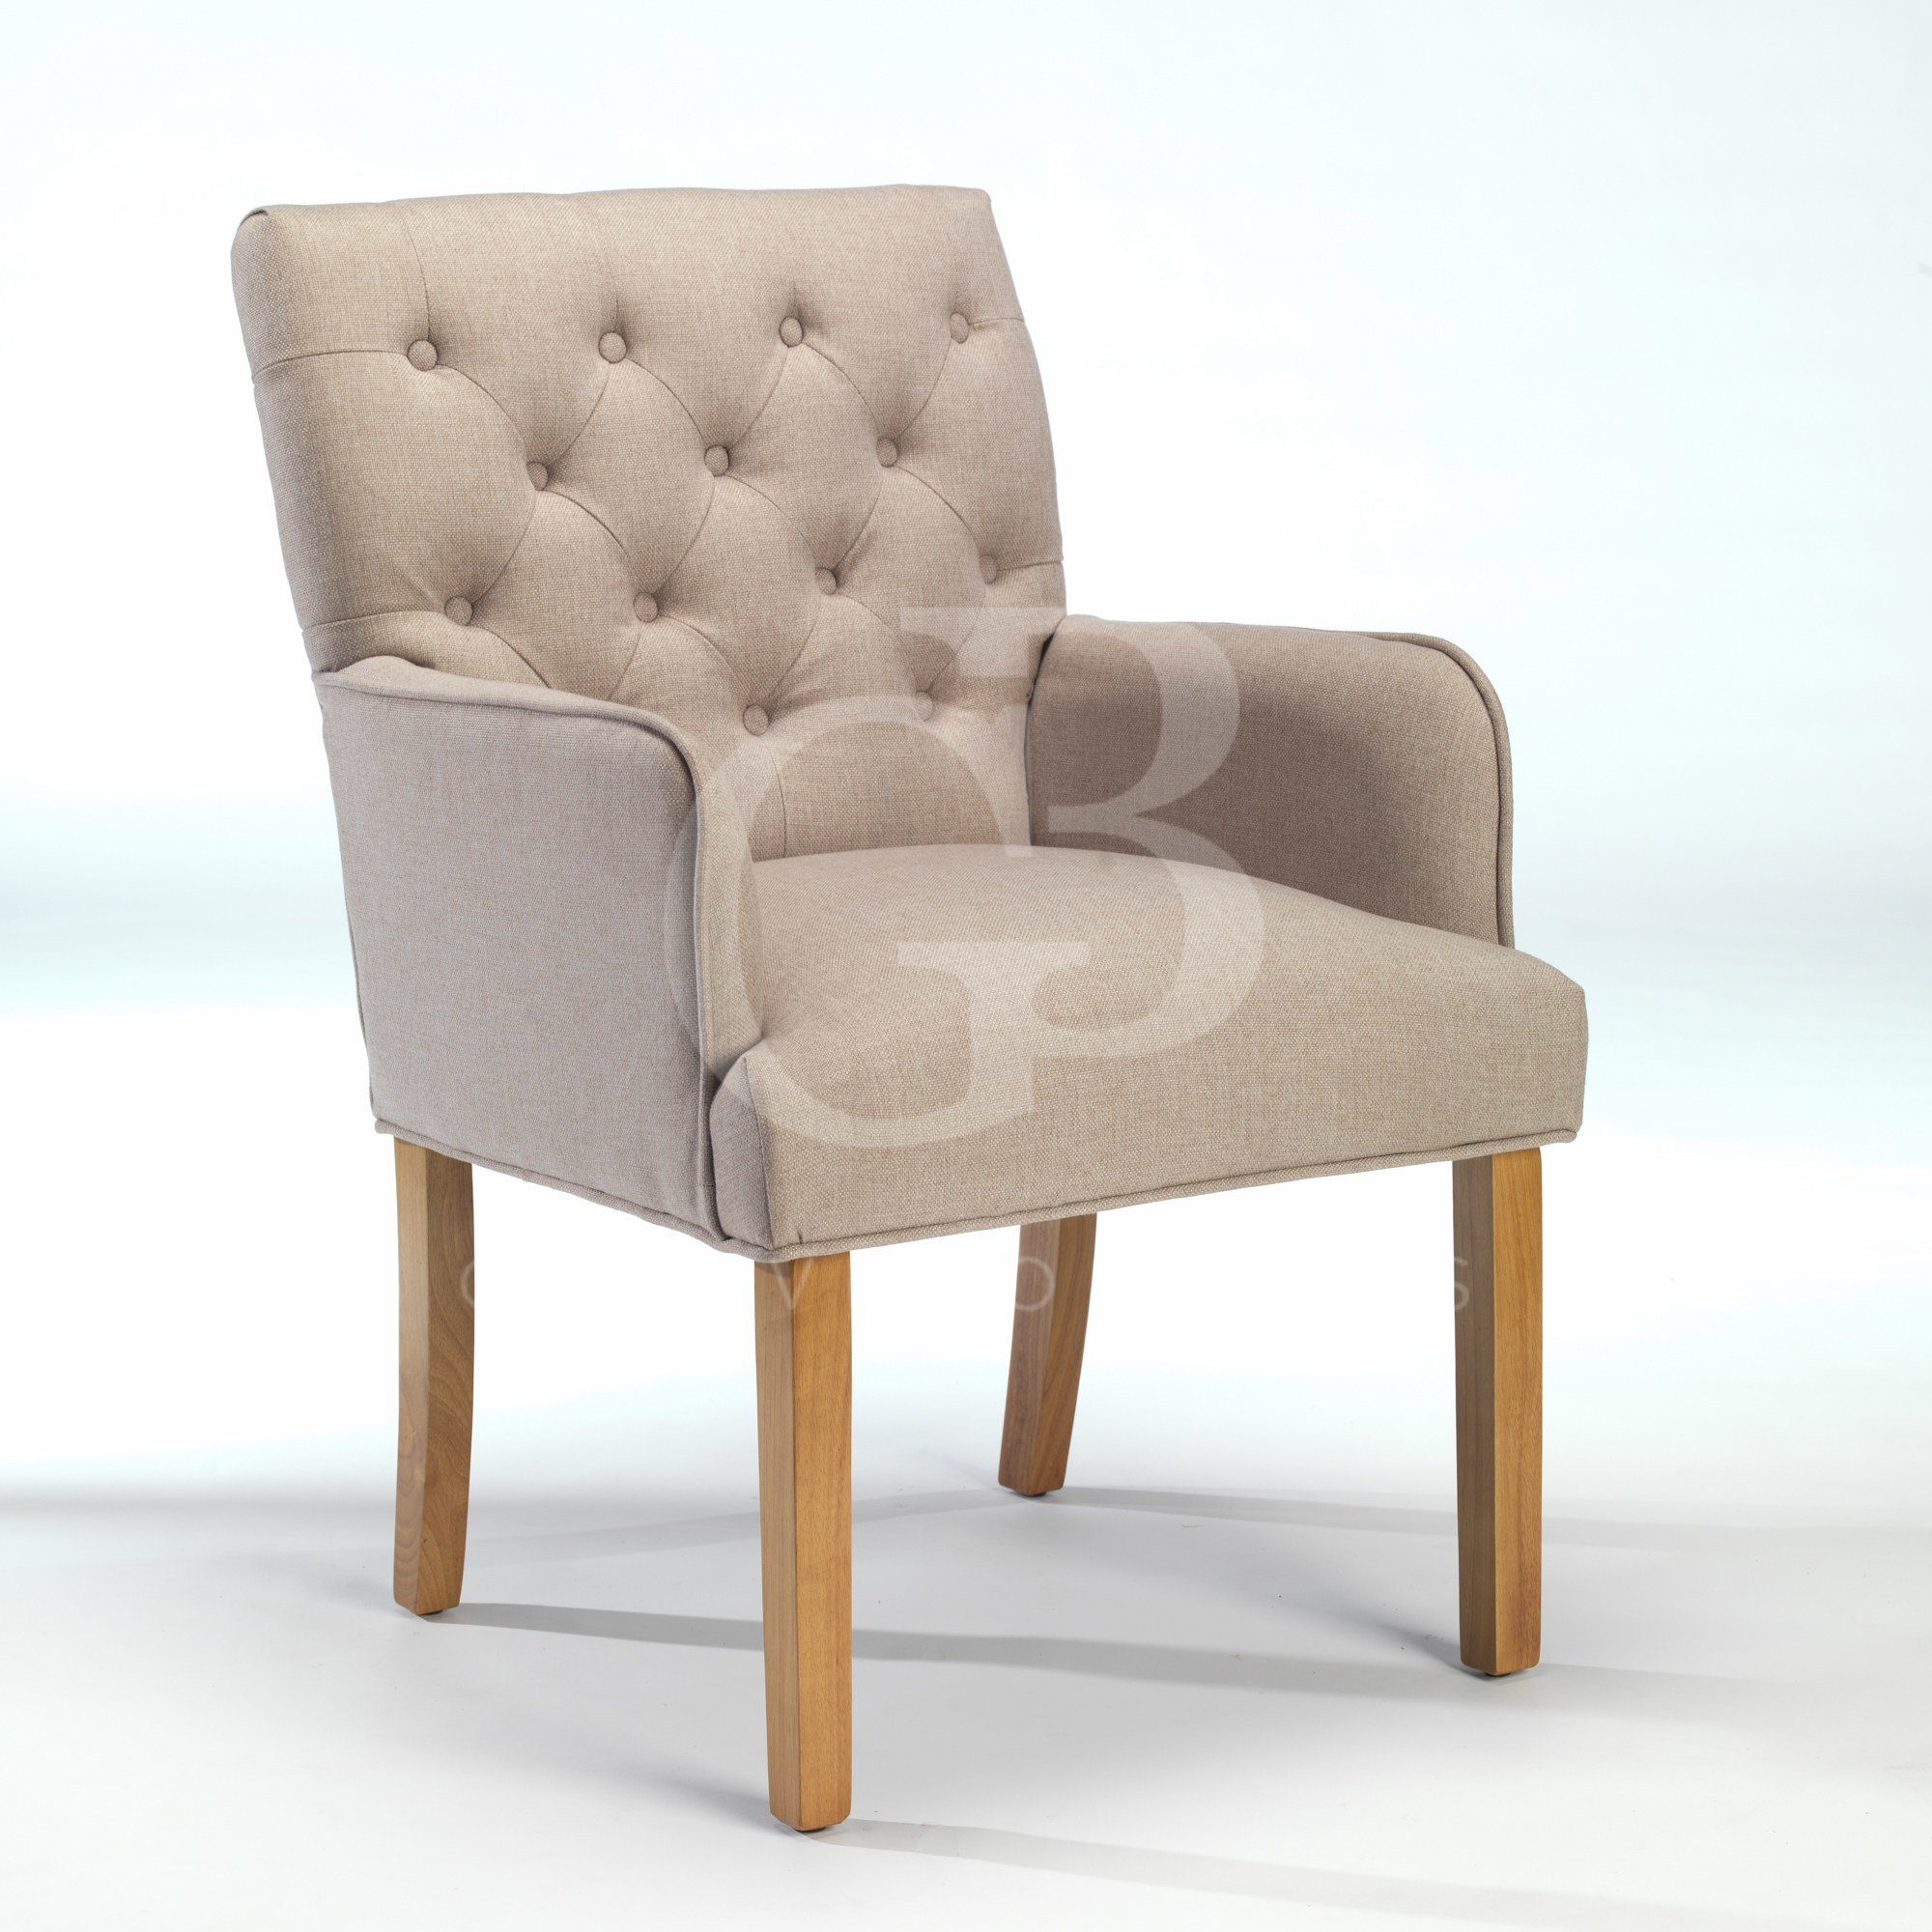 Best New Upholstered Buttoned Back Dining Chair Club Chair Bedroom Chair Egb278 P With Pictures